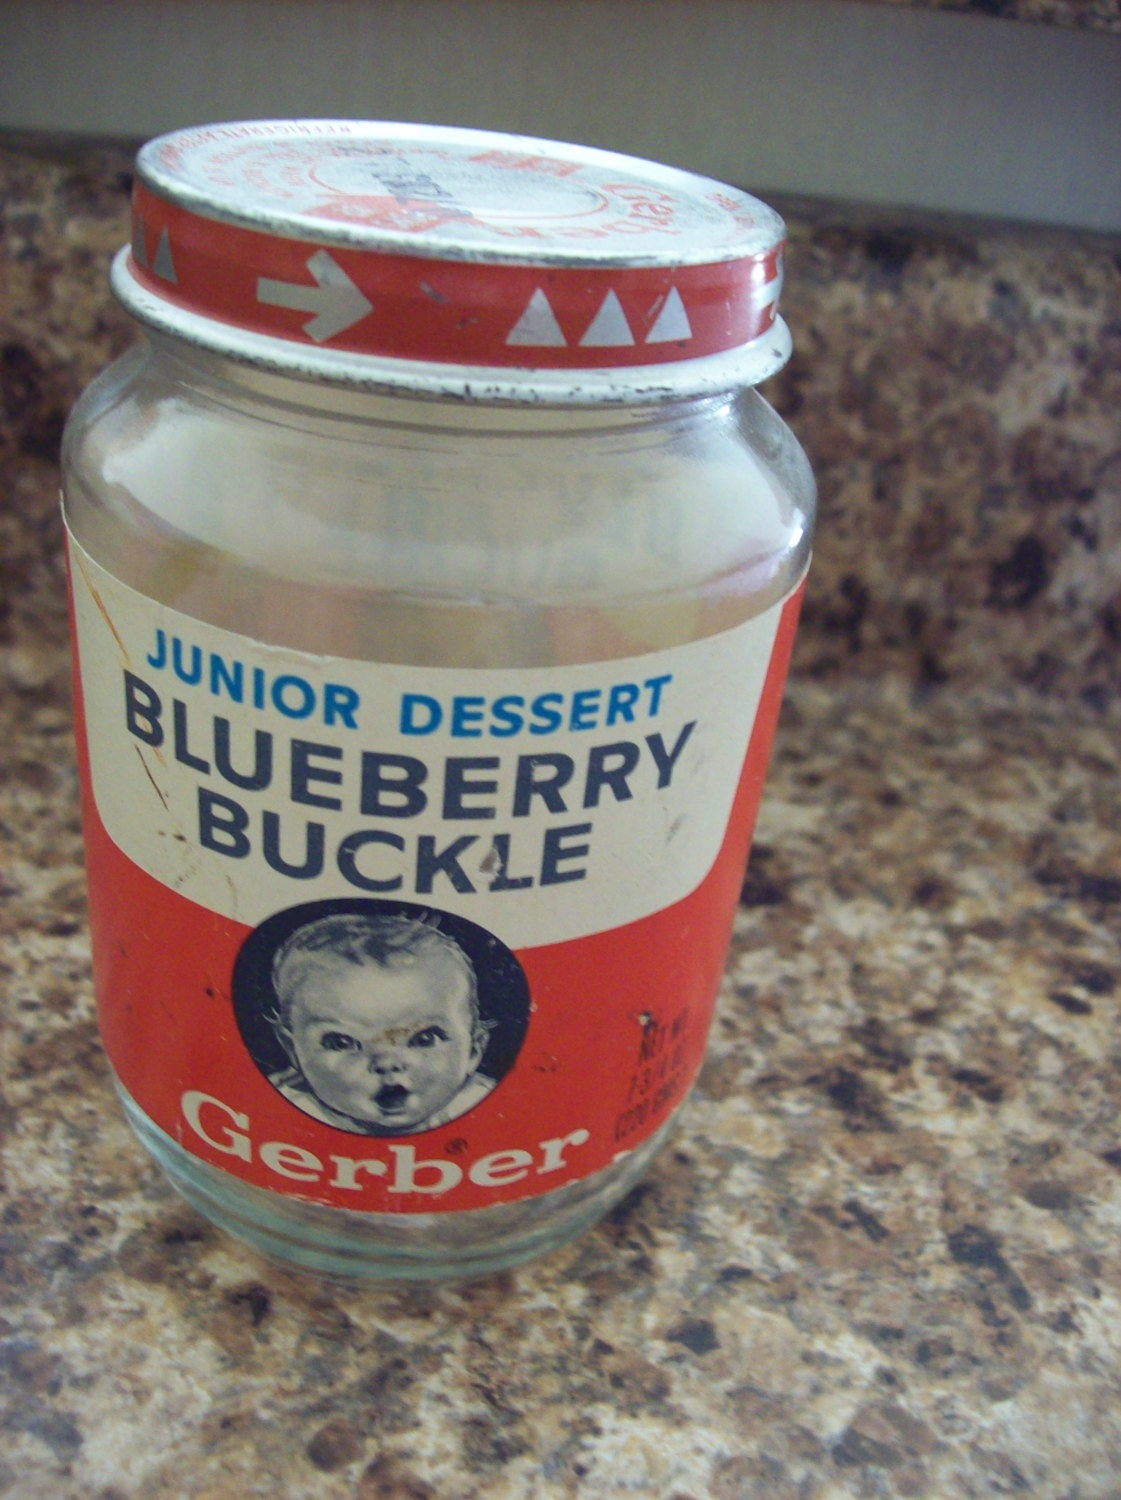 Vintage Gerber Blueberry Buckle Junior Dessert Baby Food Jar